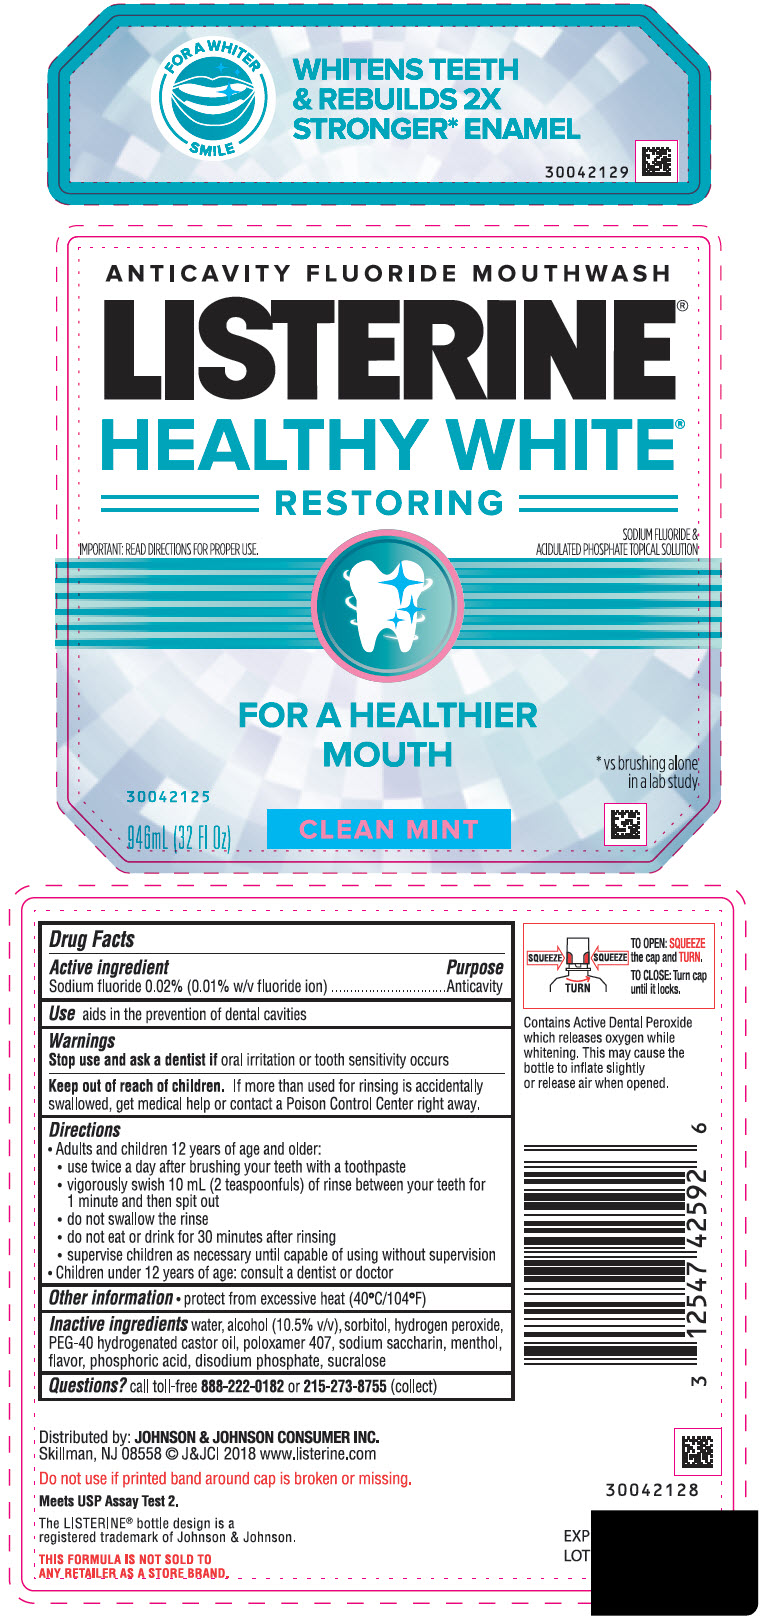 Sodium Fluoride (Listerine Healthy White Restoring Anticavity Fluoride Clean Mint)